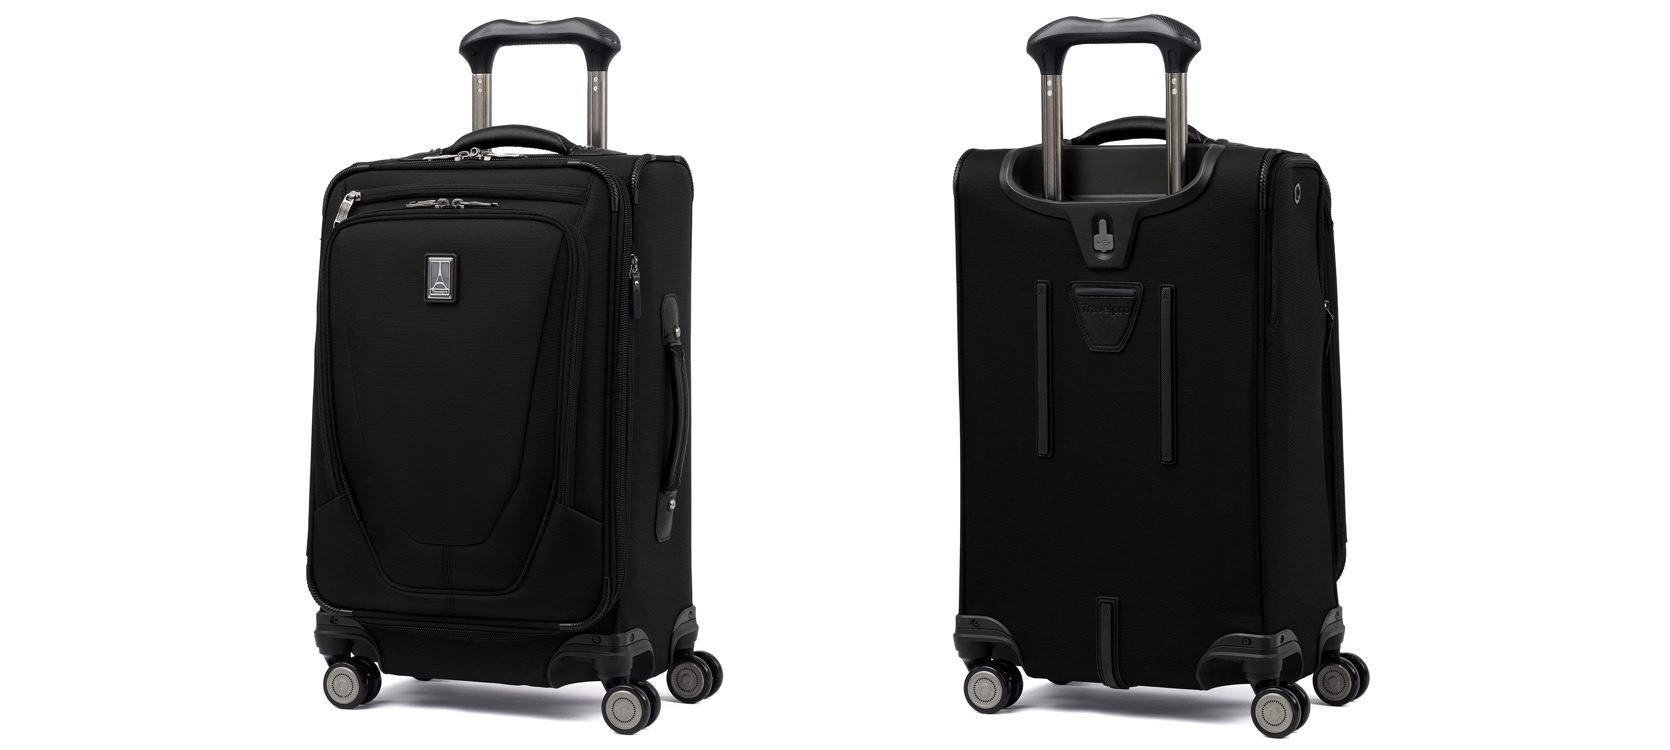 Travelpro Expandable Spinner Suitcase